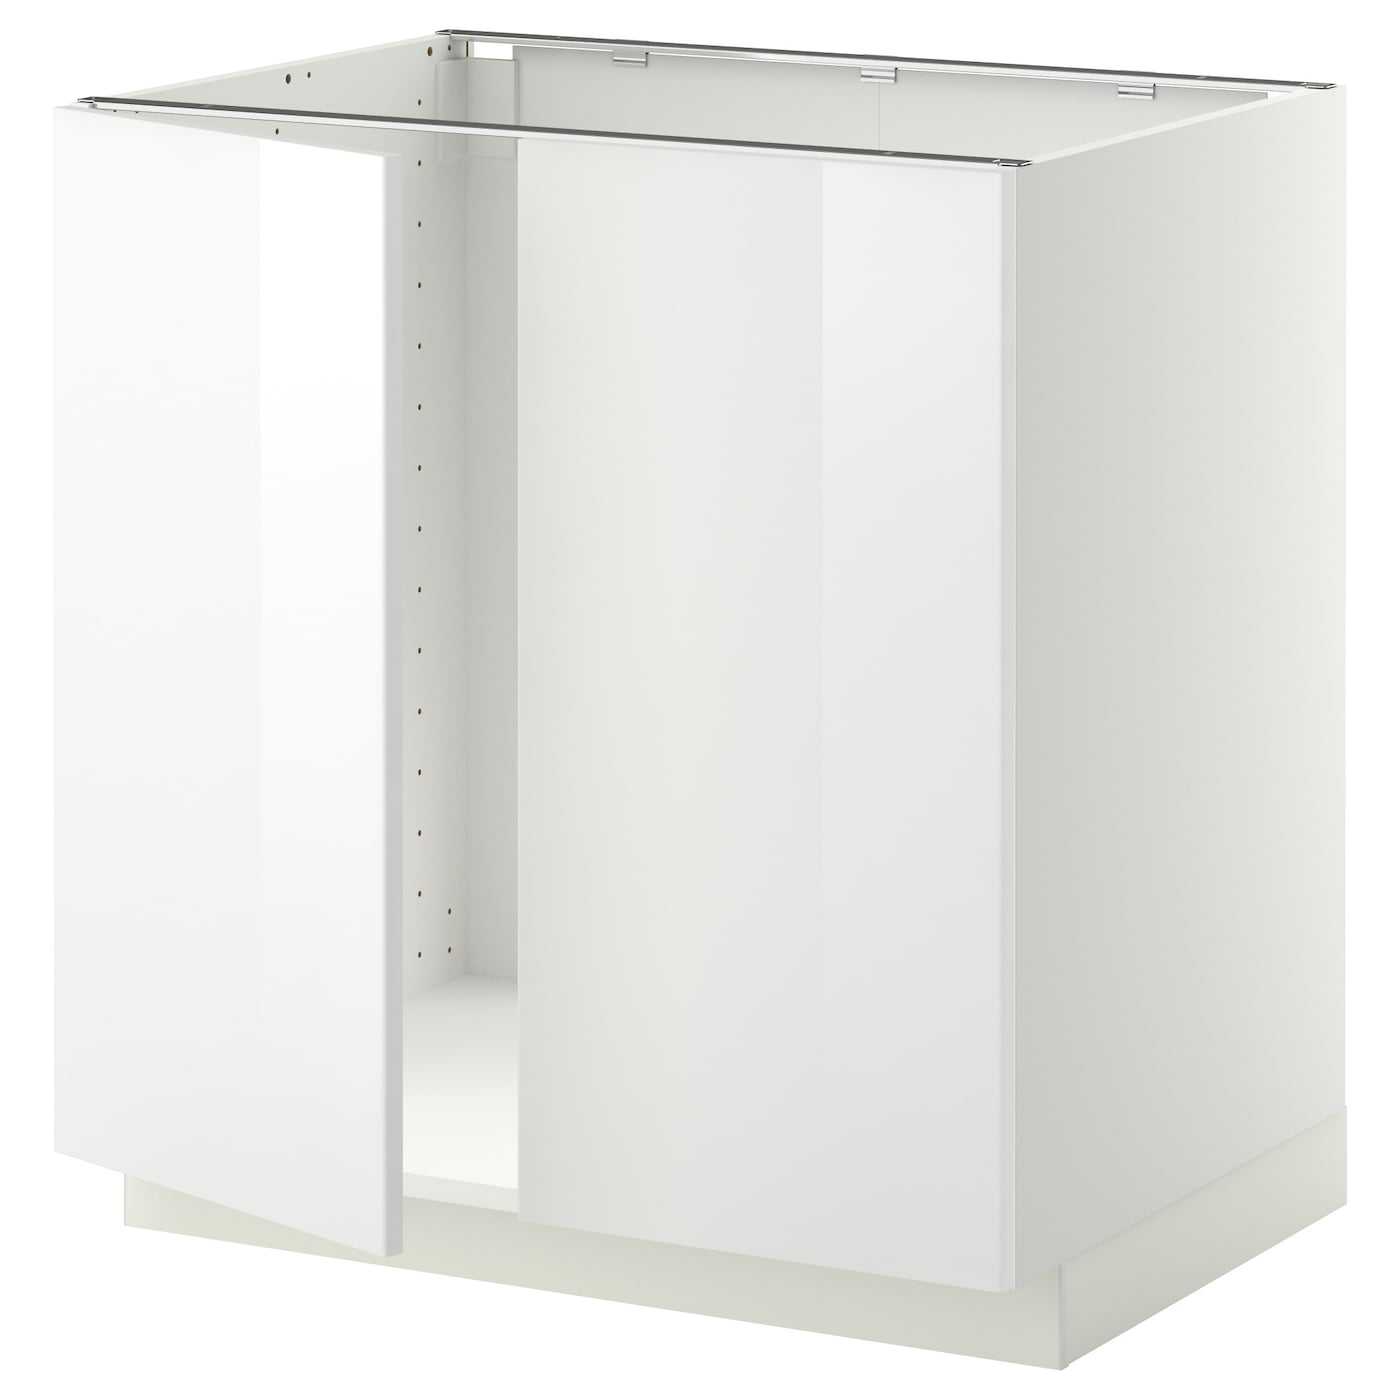 Metod base cabinet for sink 2 doors white ringhult white - Ikea cabinet doors on existing cabinets ...